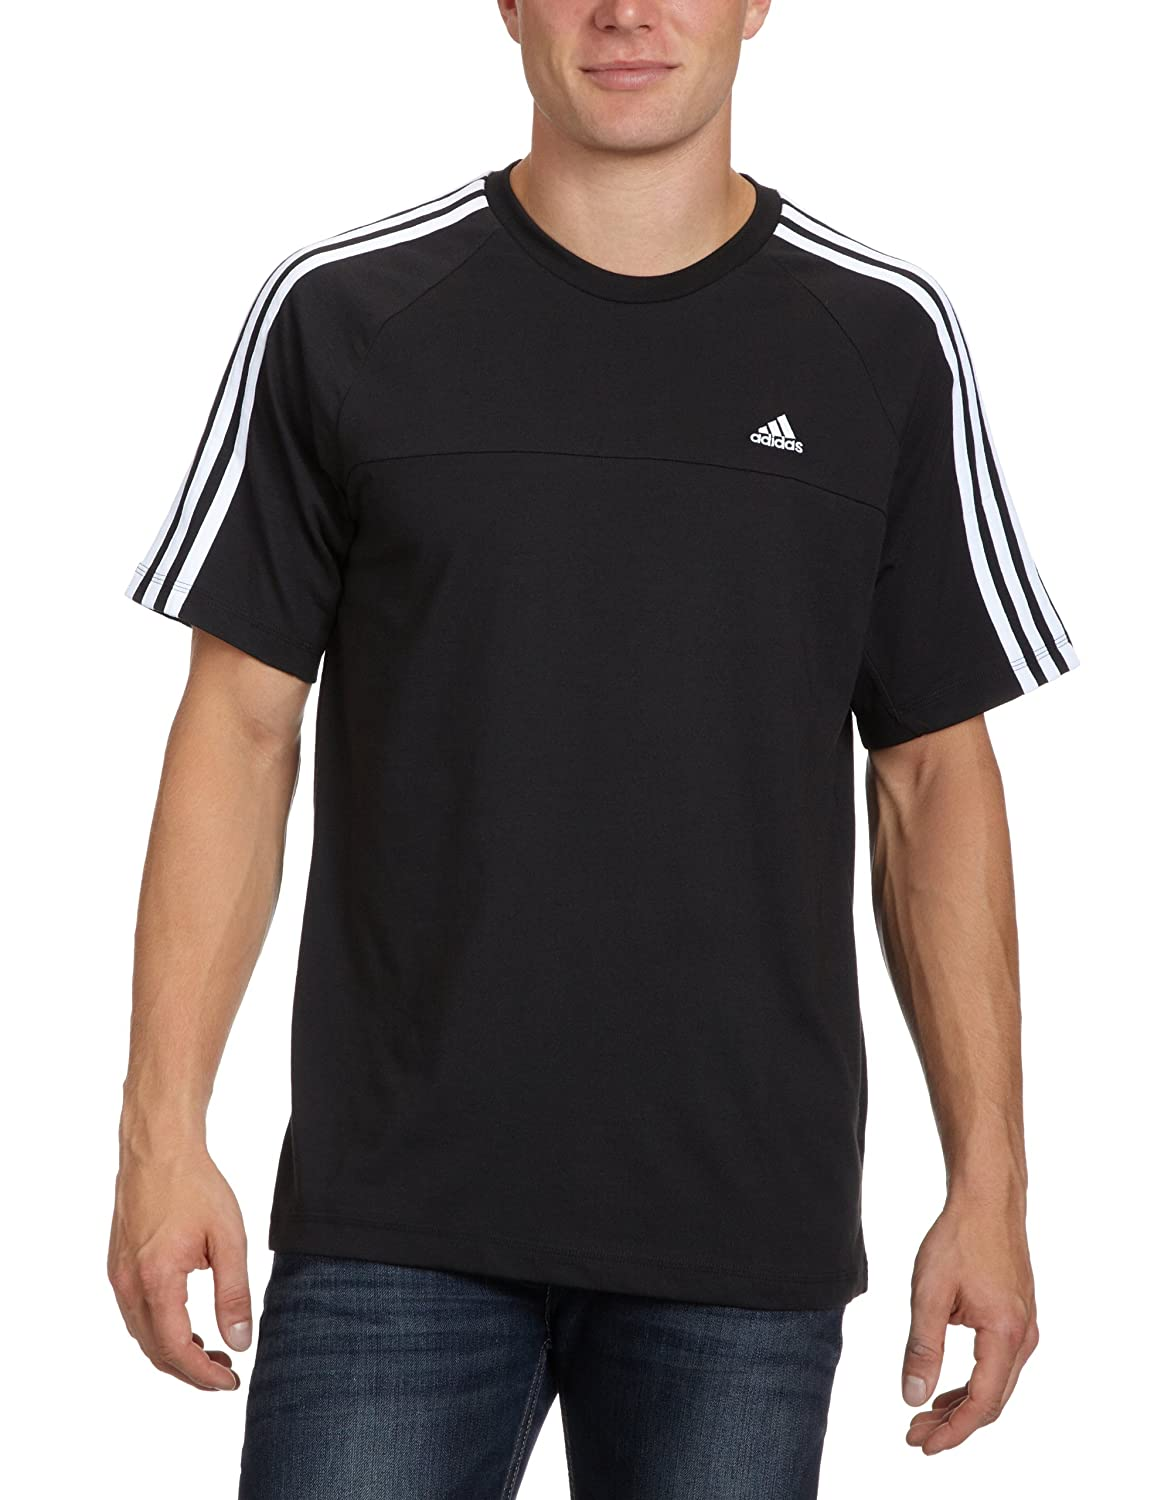 adidas Essentials 3-Stripes Men's Crew Neck T-Shirt